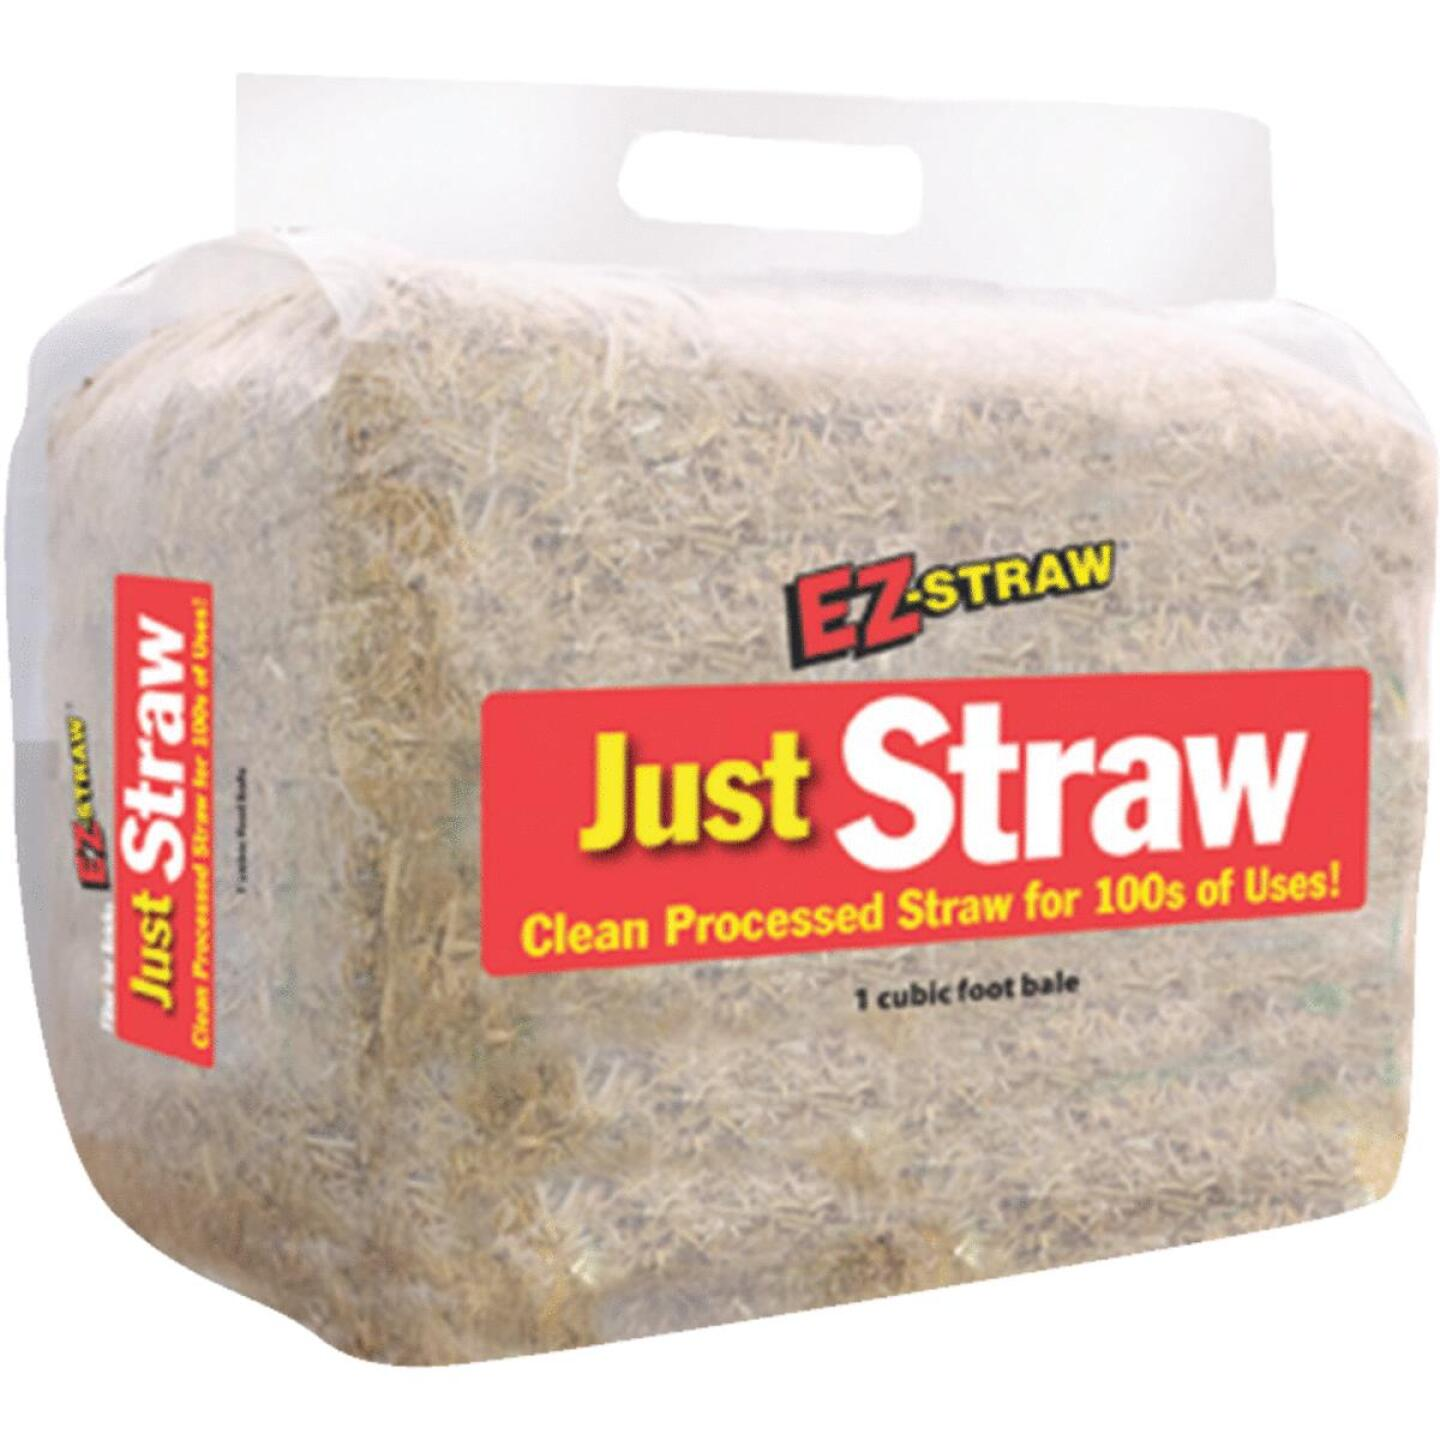 EZ Straw 1 Cu. Ft. Straw Image 1